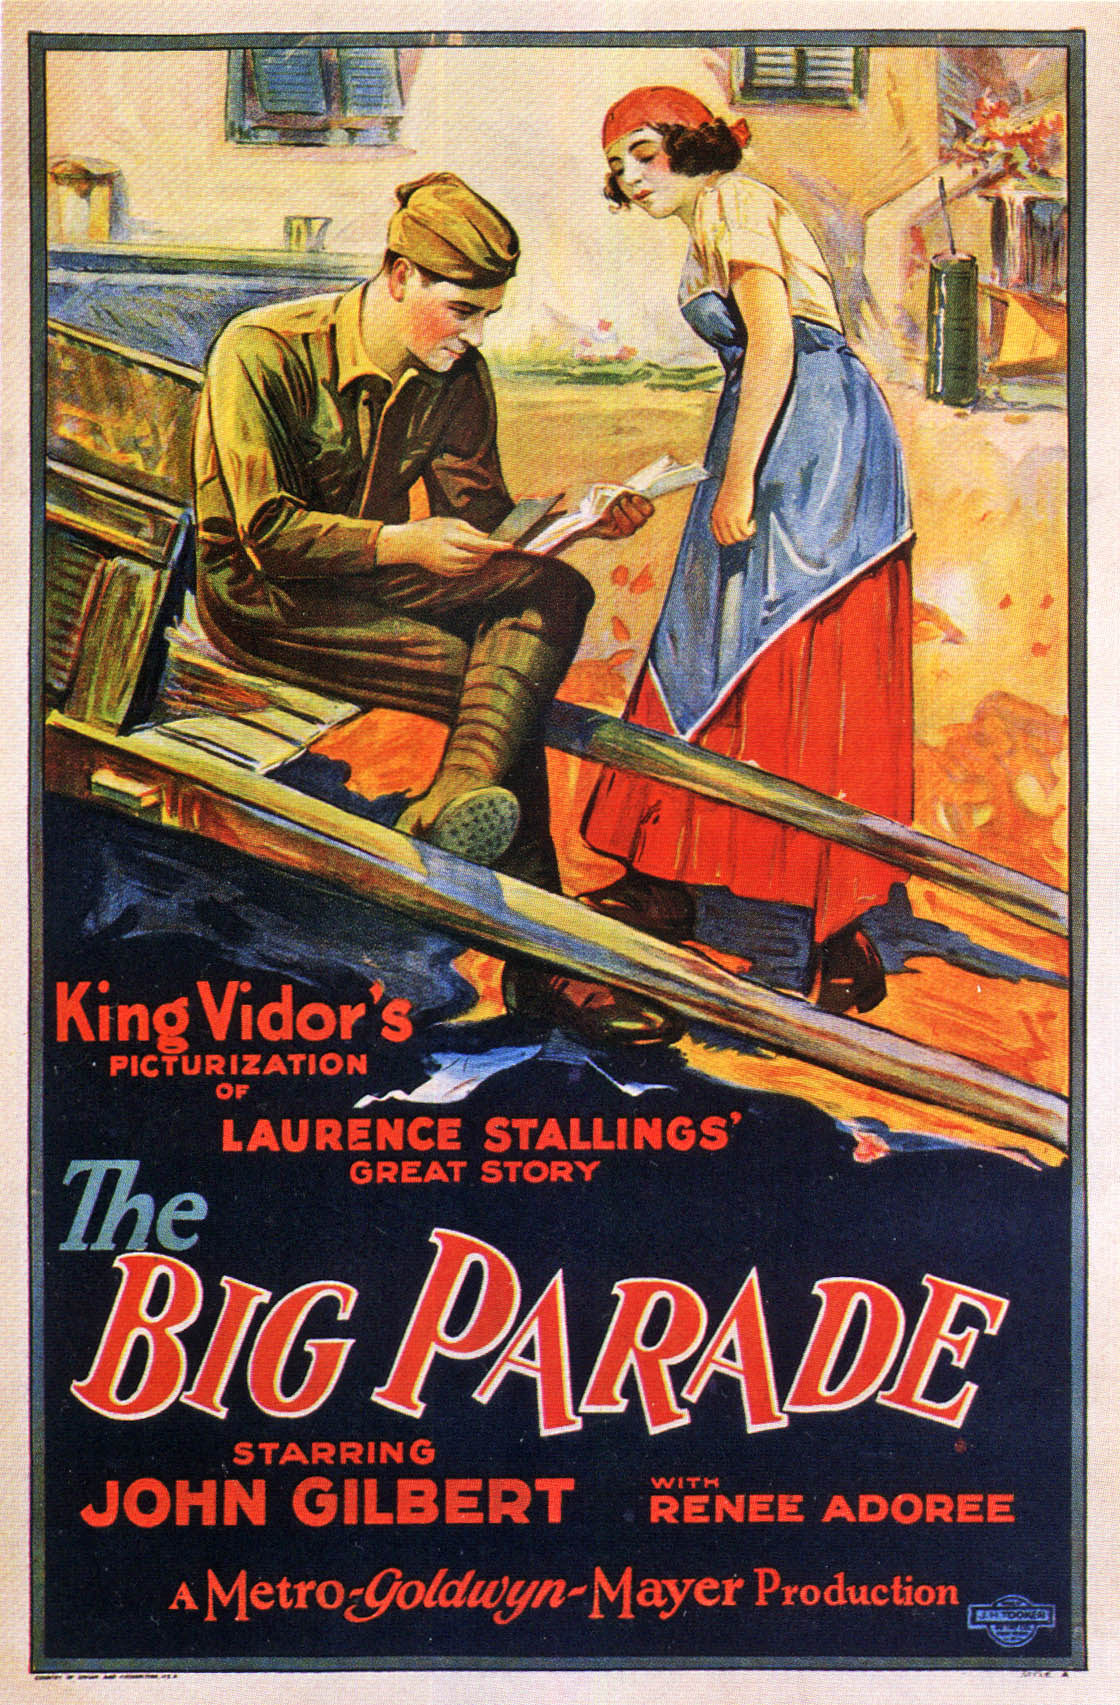 the big parade - wikipedia